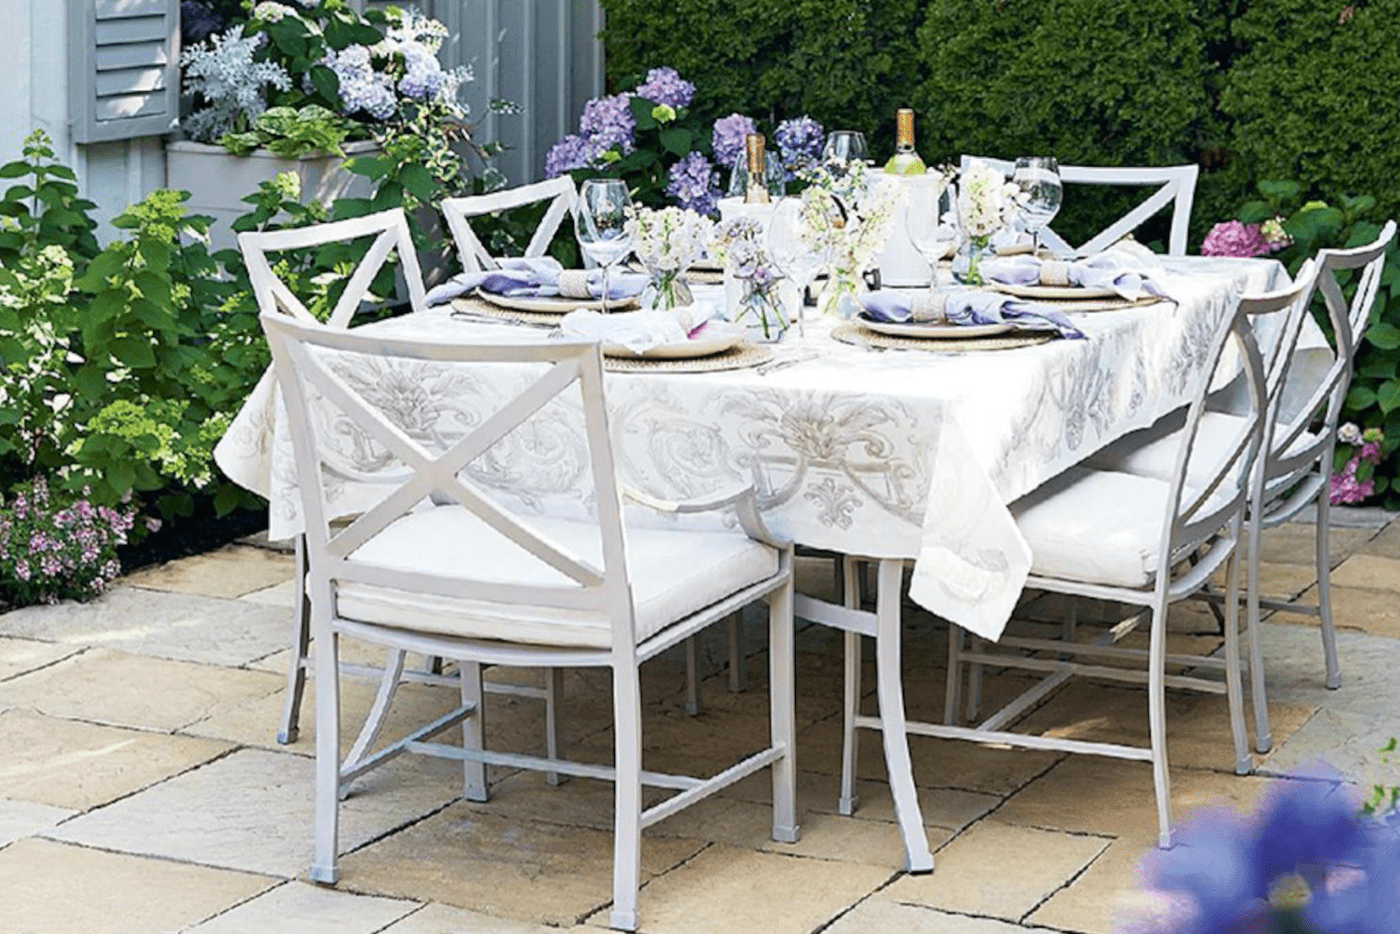 white table with white chair and floral place setting